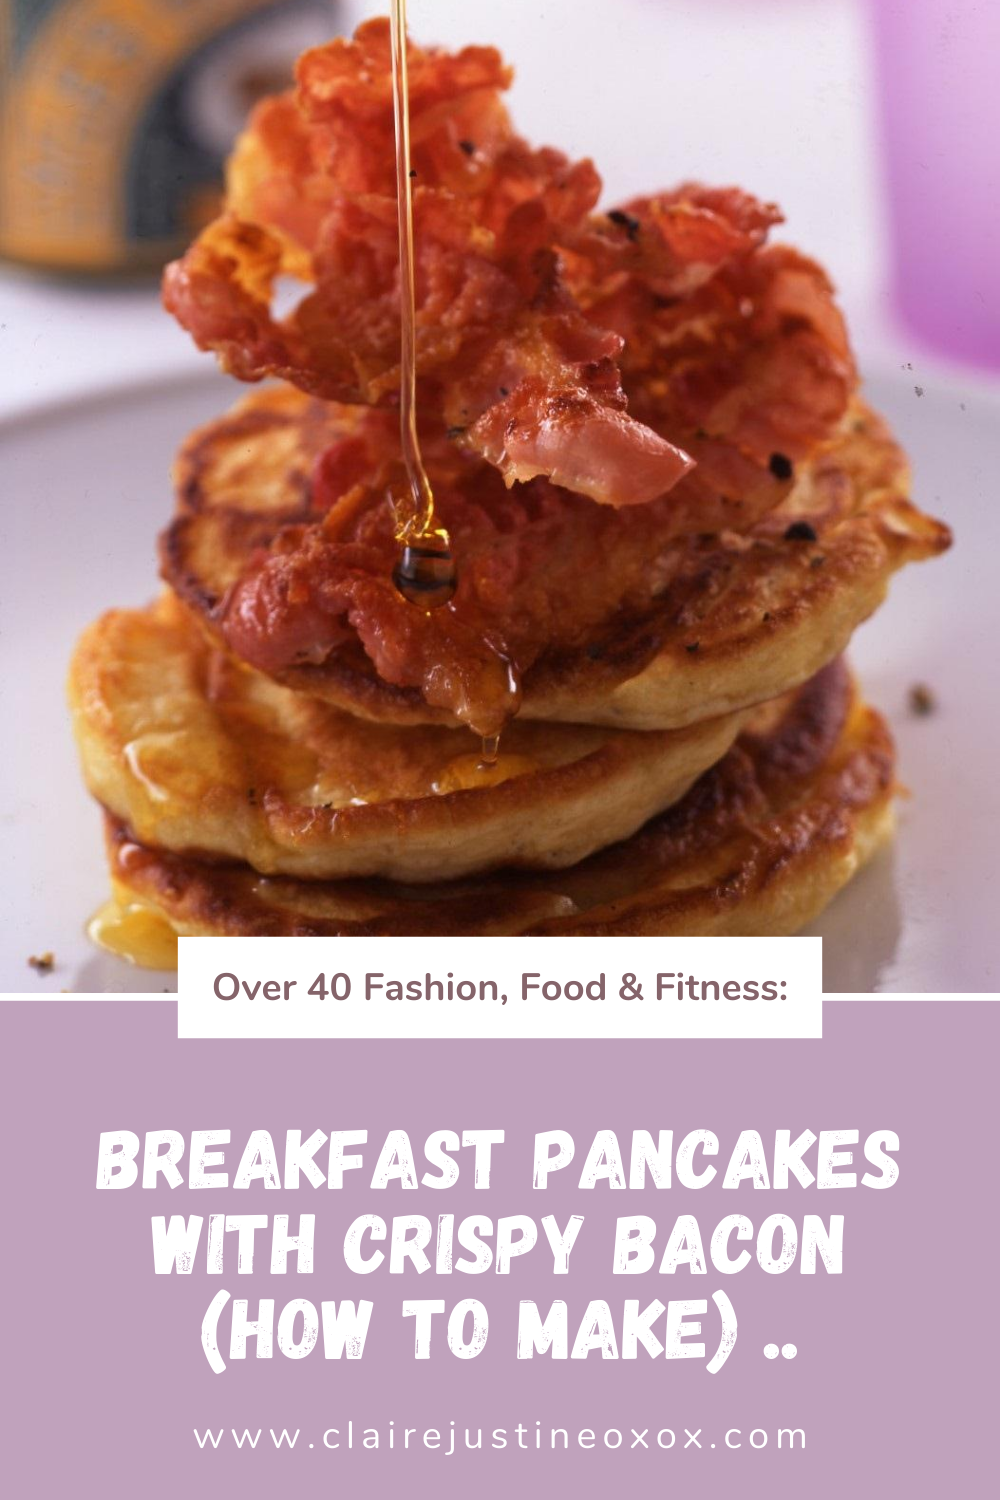 Breakfast Pancakes with Crispy Bacon (How To Make)